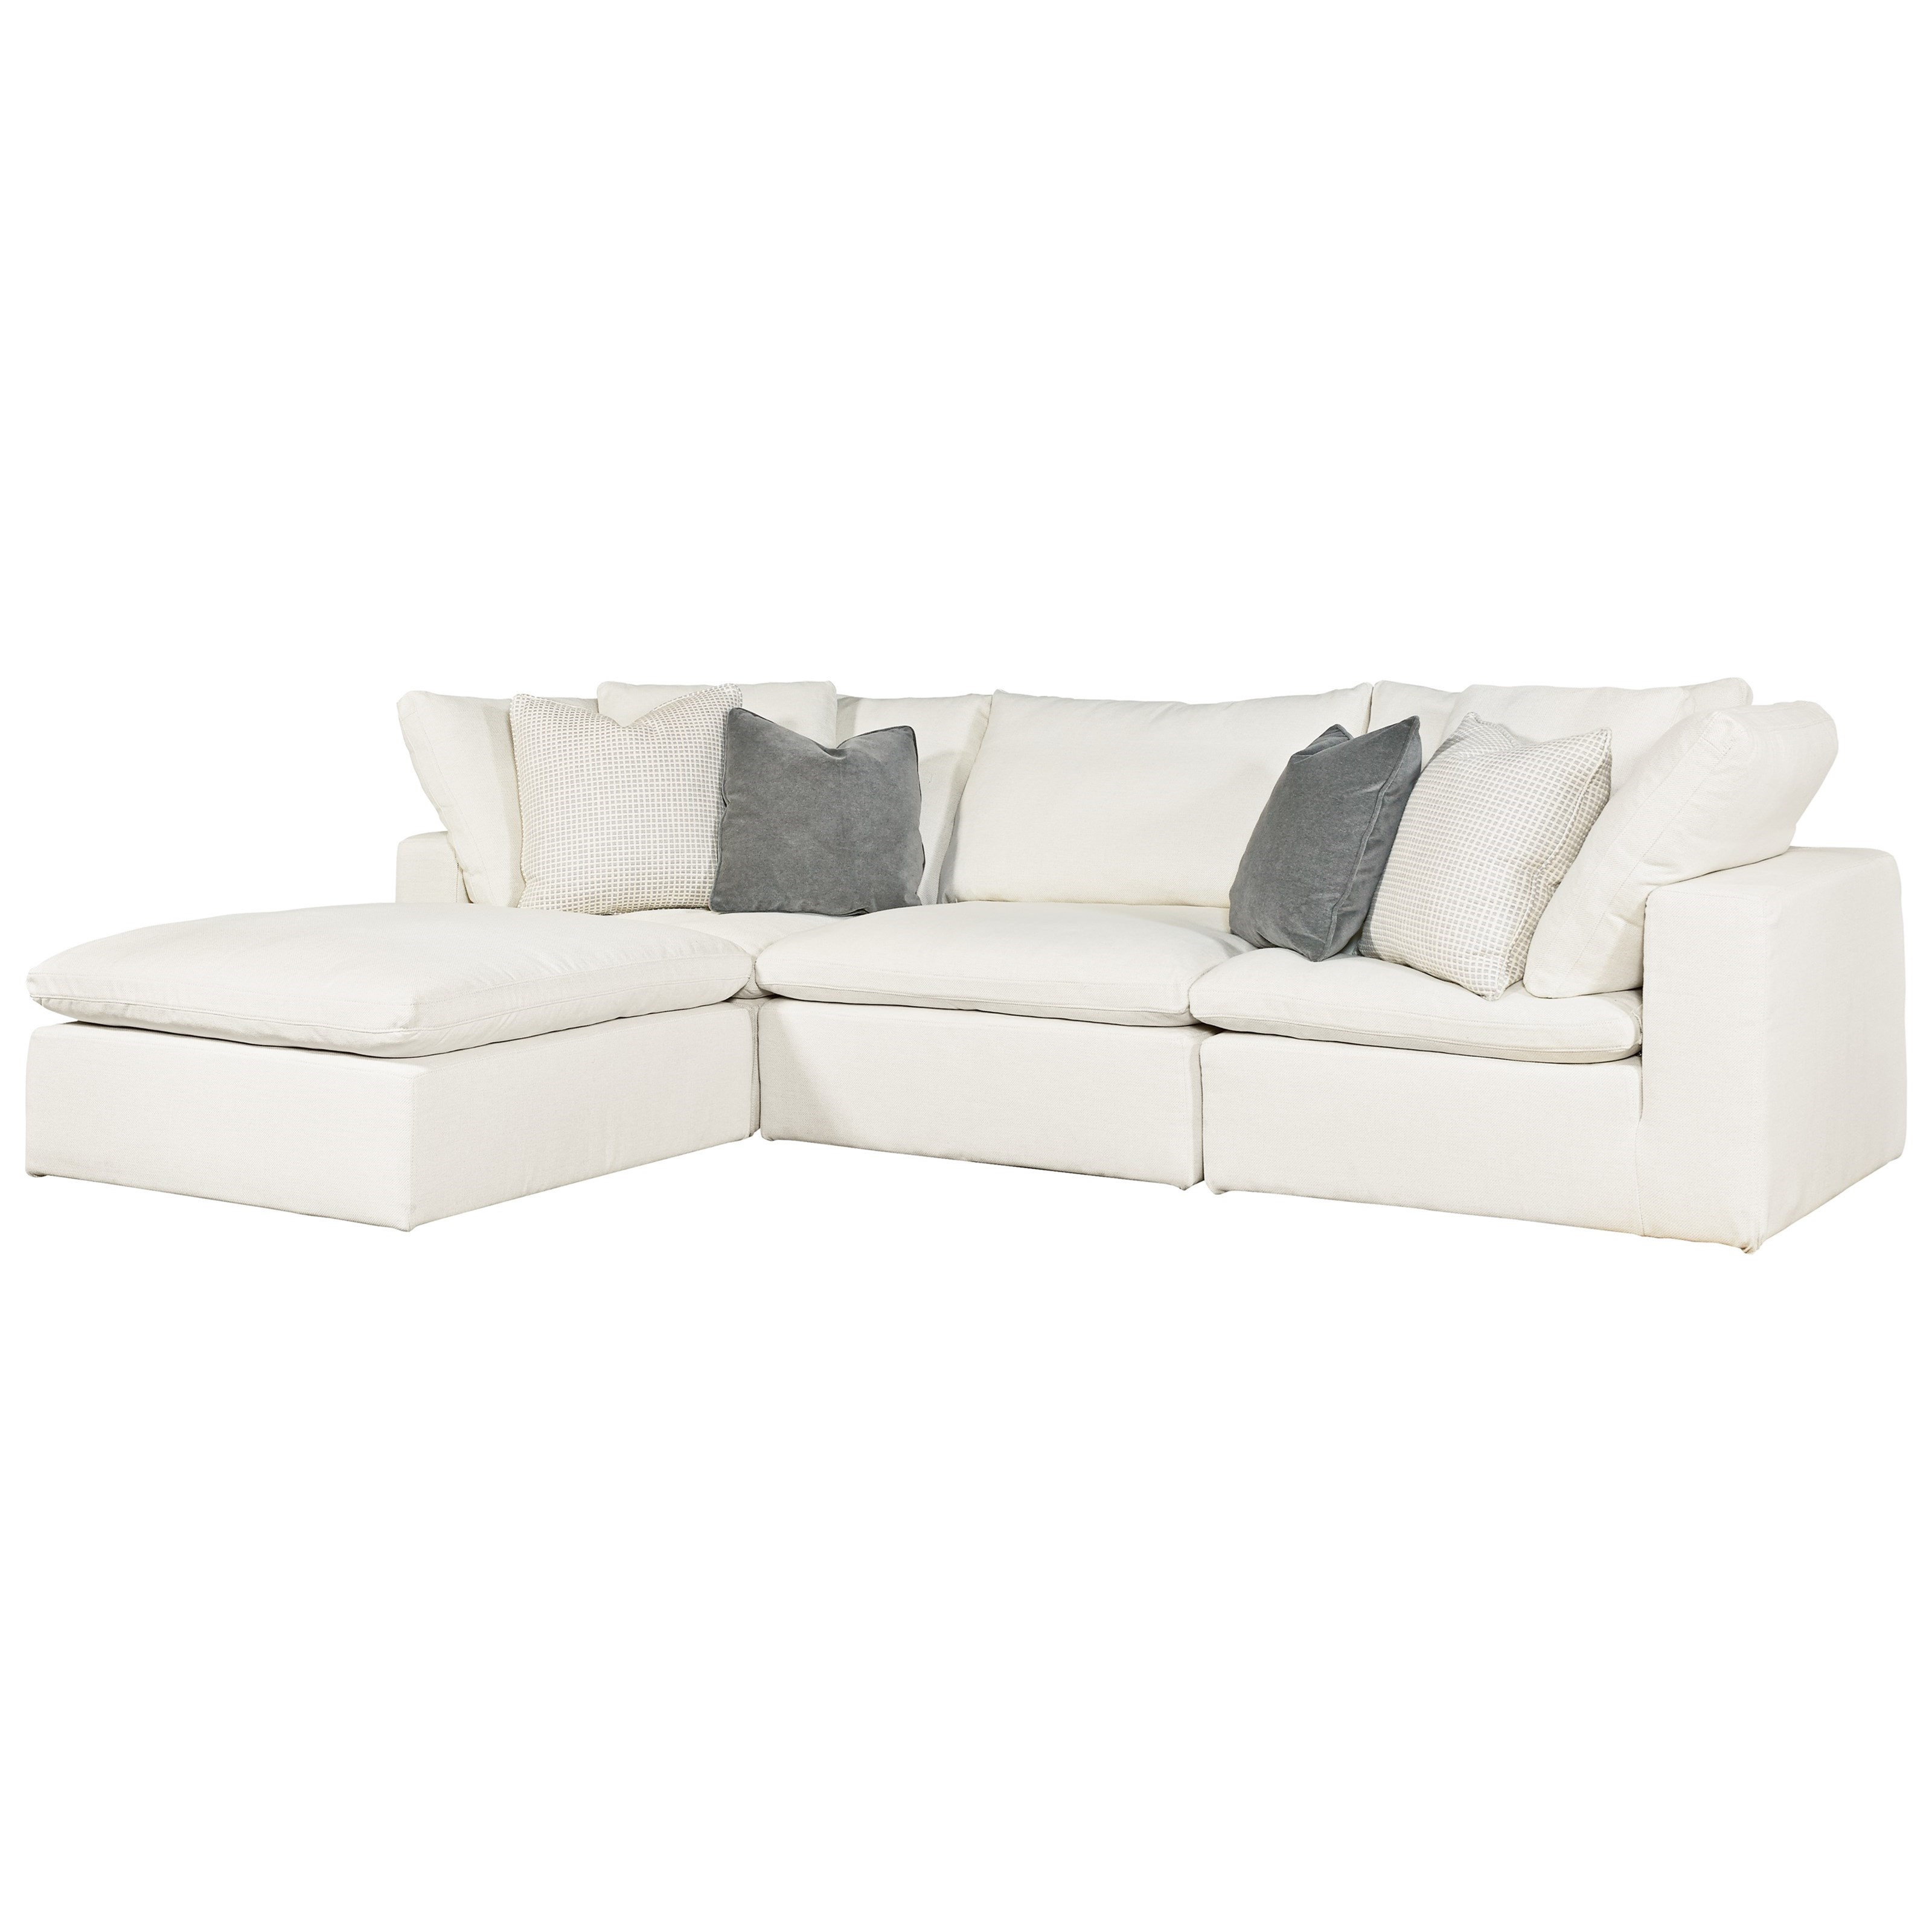 Universal palmer 681541 610 4 piece sectional with raf laf for 4 piece sectional with chaise